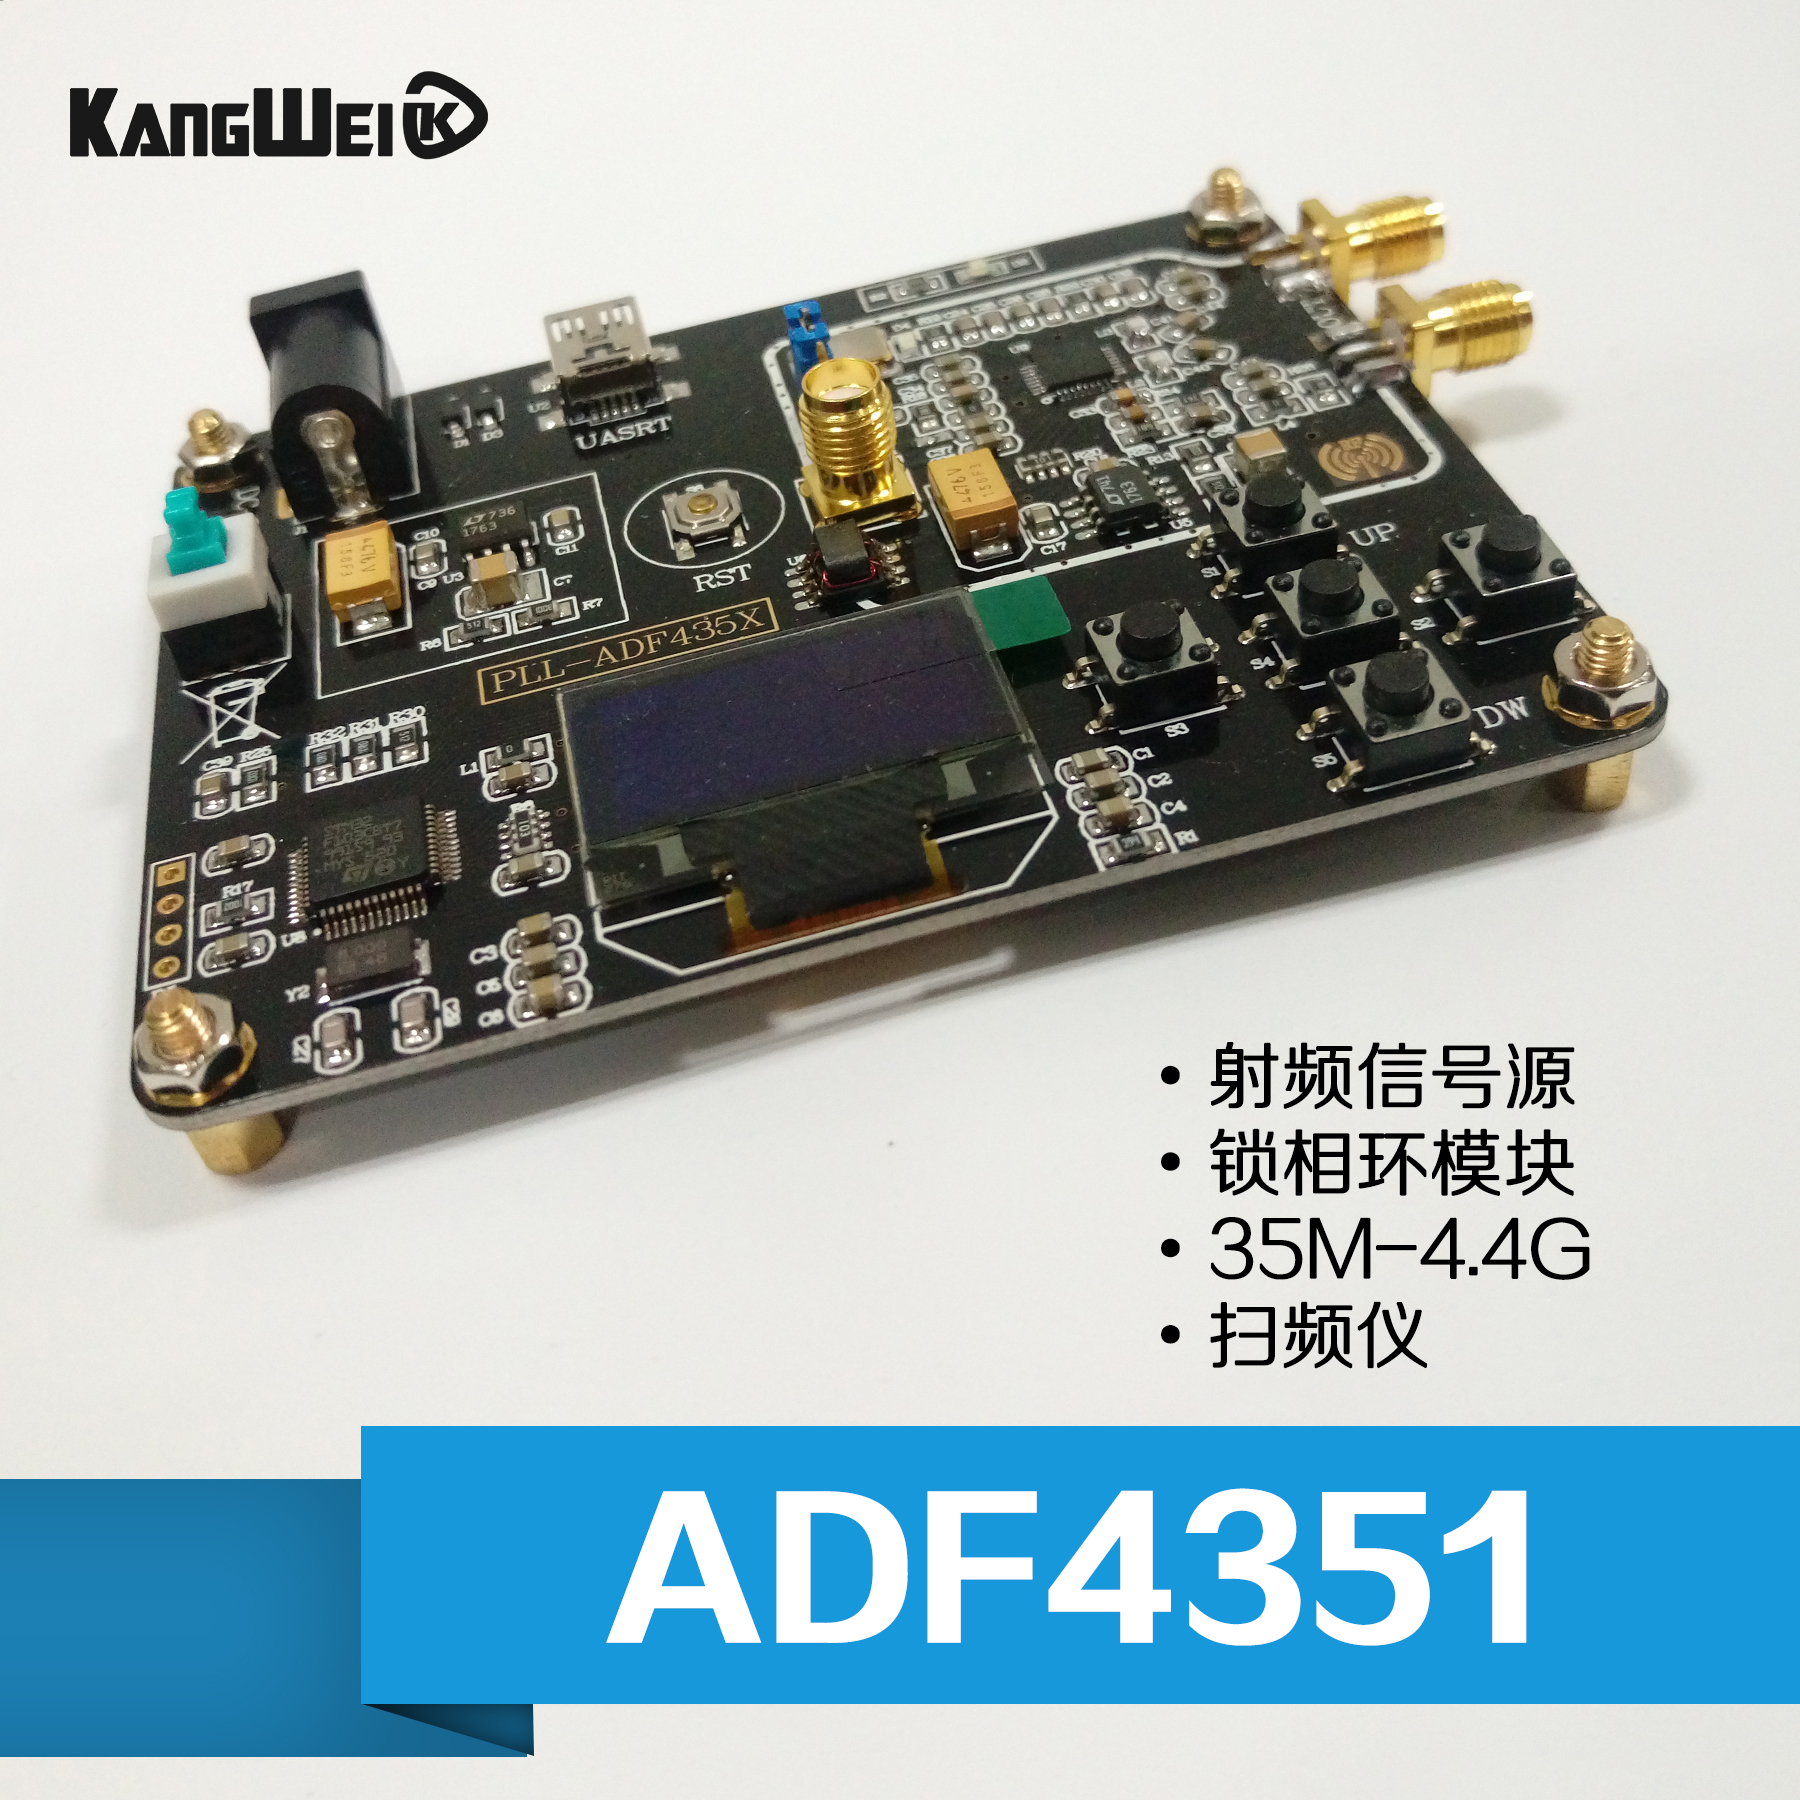 ADF4351 On-board STM32 Single-chip PLL Module 35M-4.4G RF Signal Source Sweep Frequency Meter adf4350 adf4351 development board 35m 4 4g rf source sweep frequency source pll development board